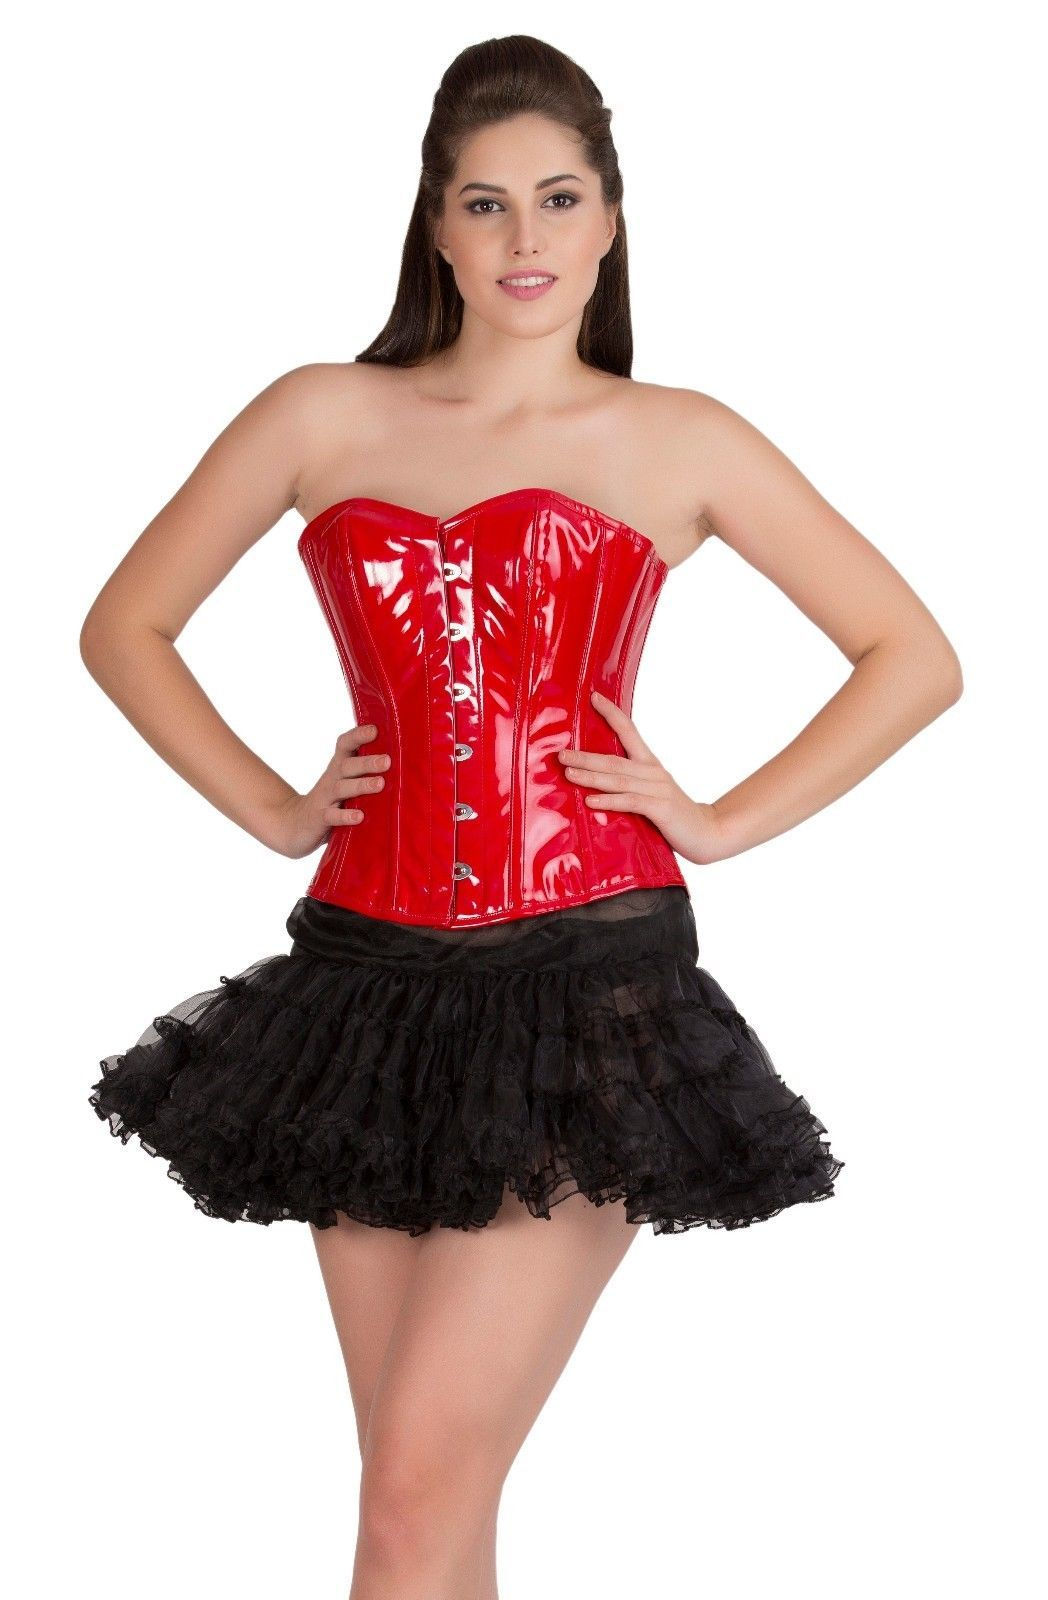 Red PVC Leather  Gothic Steampunk Bustier Overbust Tutu Skirt Corset Dress